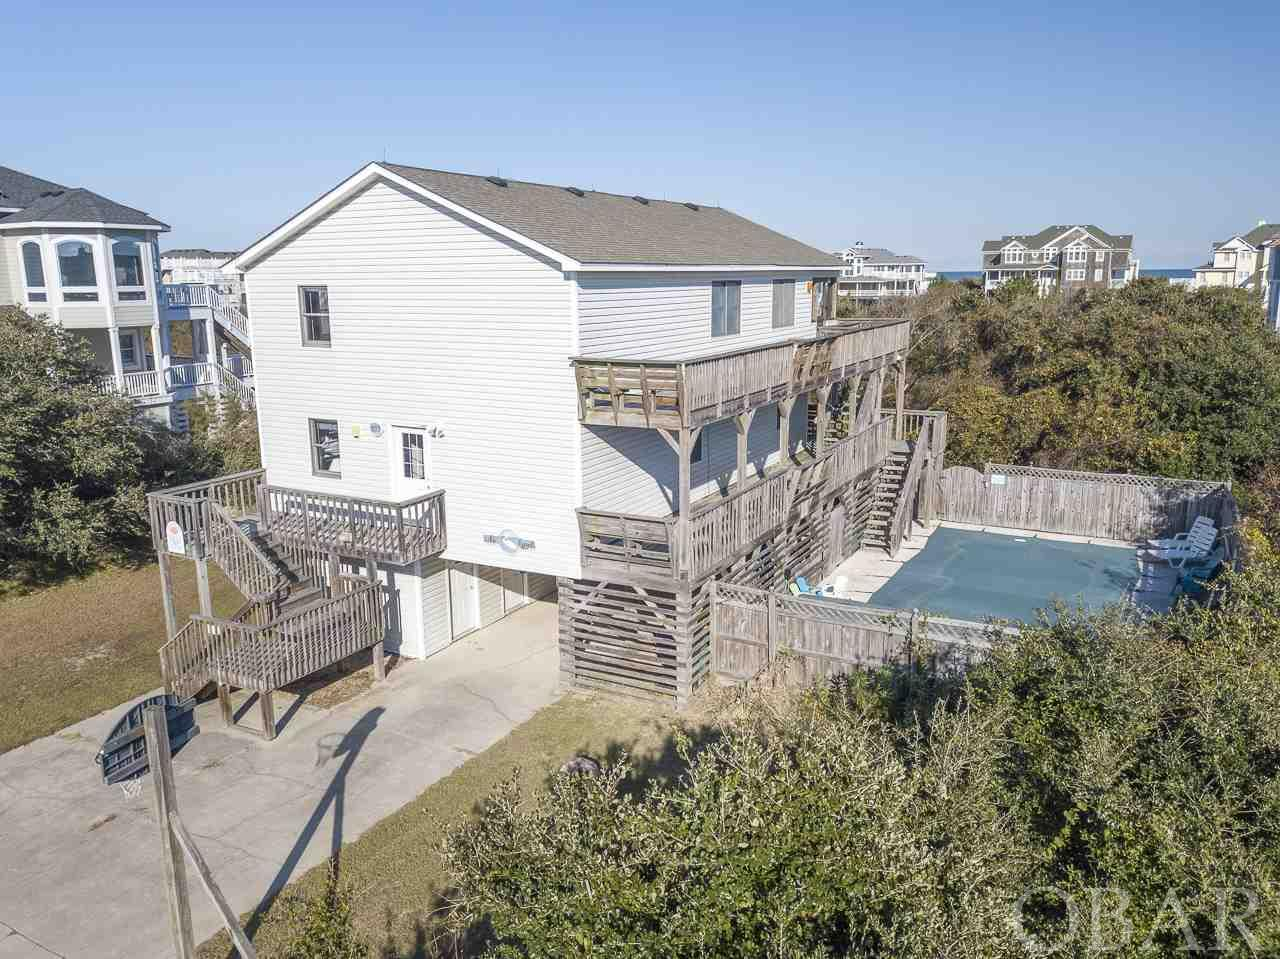 877 Whalehead Drive, Corolla, NC 27927, 5 Bedrooms Bedrooms, ,3 BathroomsBathrooms,Residential,For sale,Whalehead Drive,102549